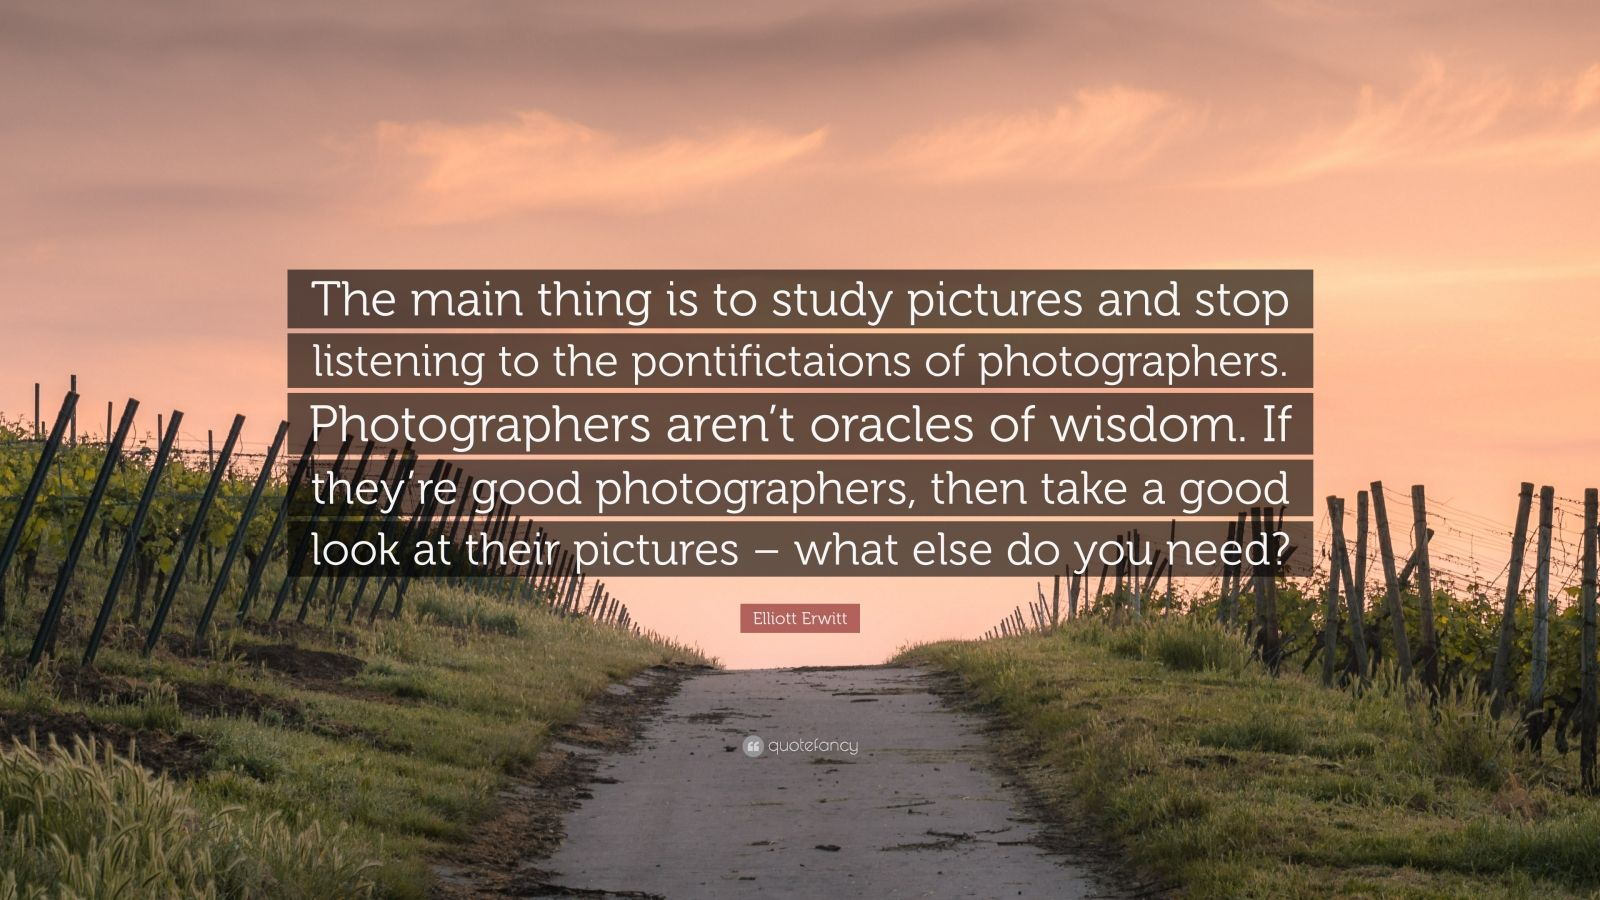 """Elliott Erwitt Quote: """"The main thing is to study pictures and stop listening to the pontifictaions of photographers. Photographers aren't oracles of wisdom. If they're good photographers, then take a good look at their pictures – what else do you need?"""""""